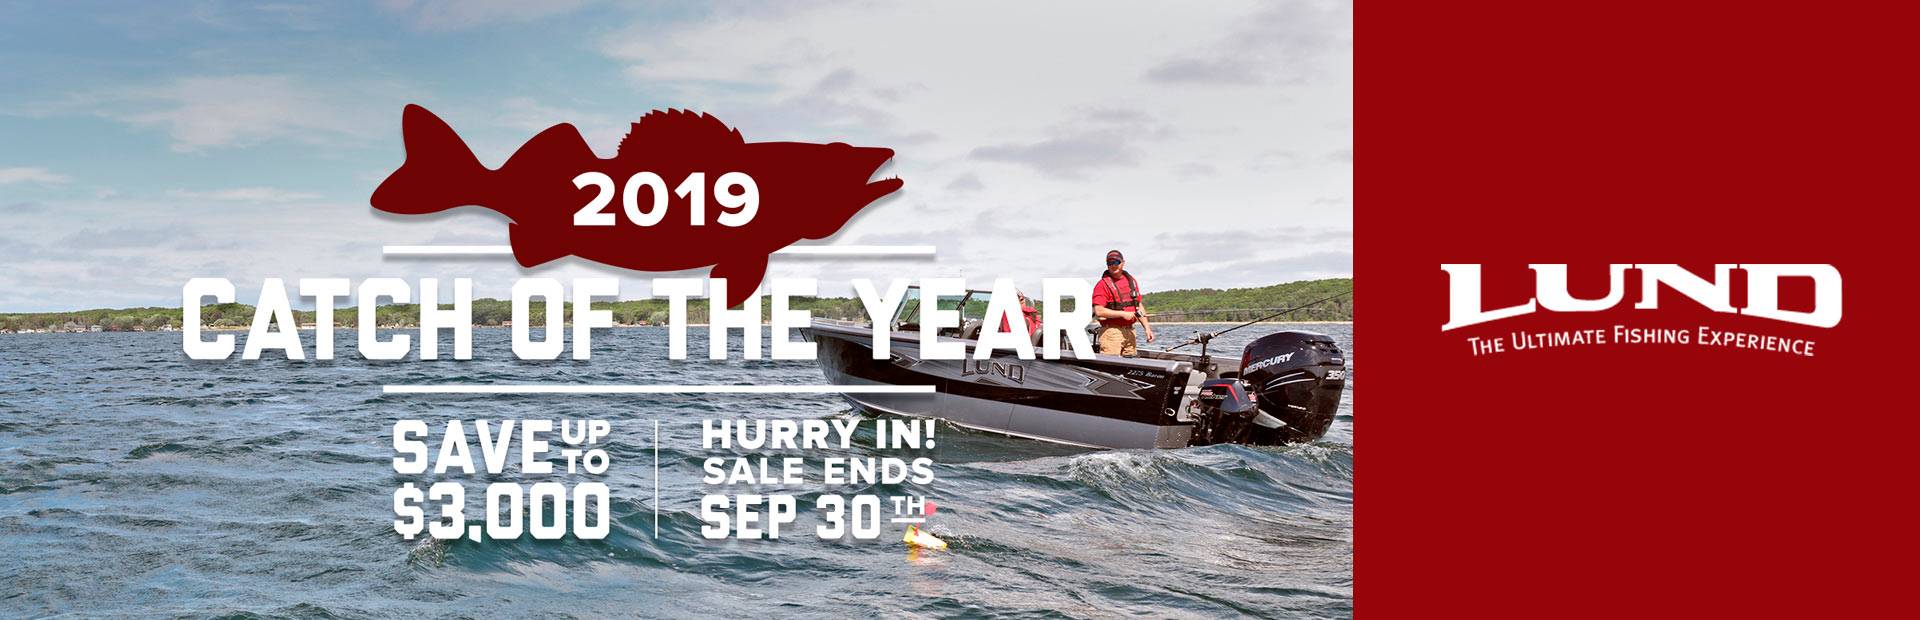 Lund: 2019 Catch Of The Year